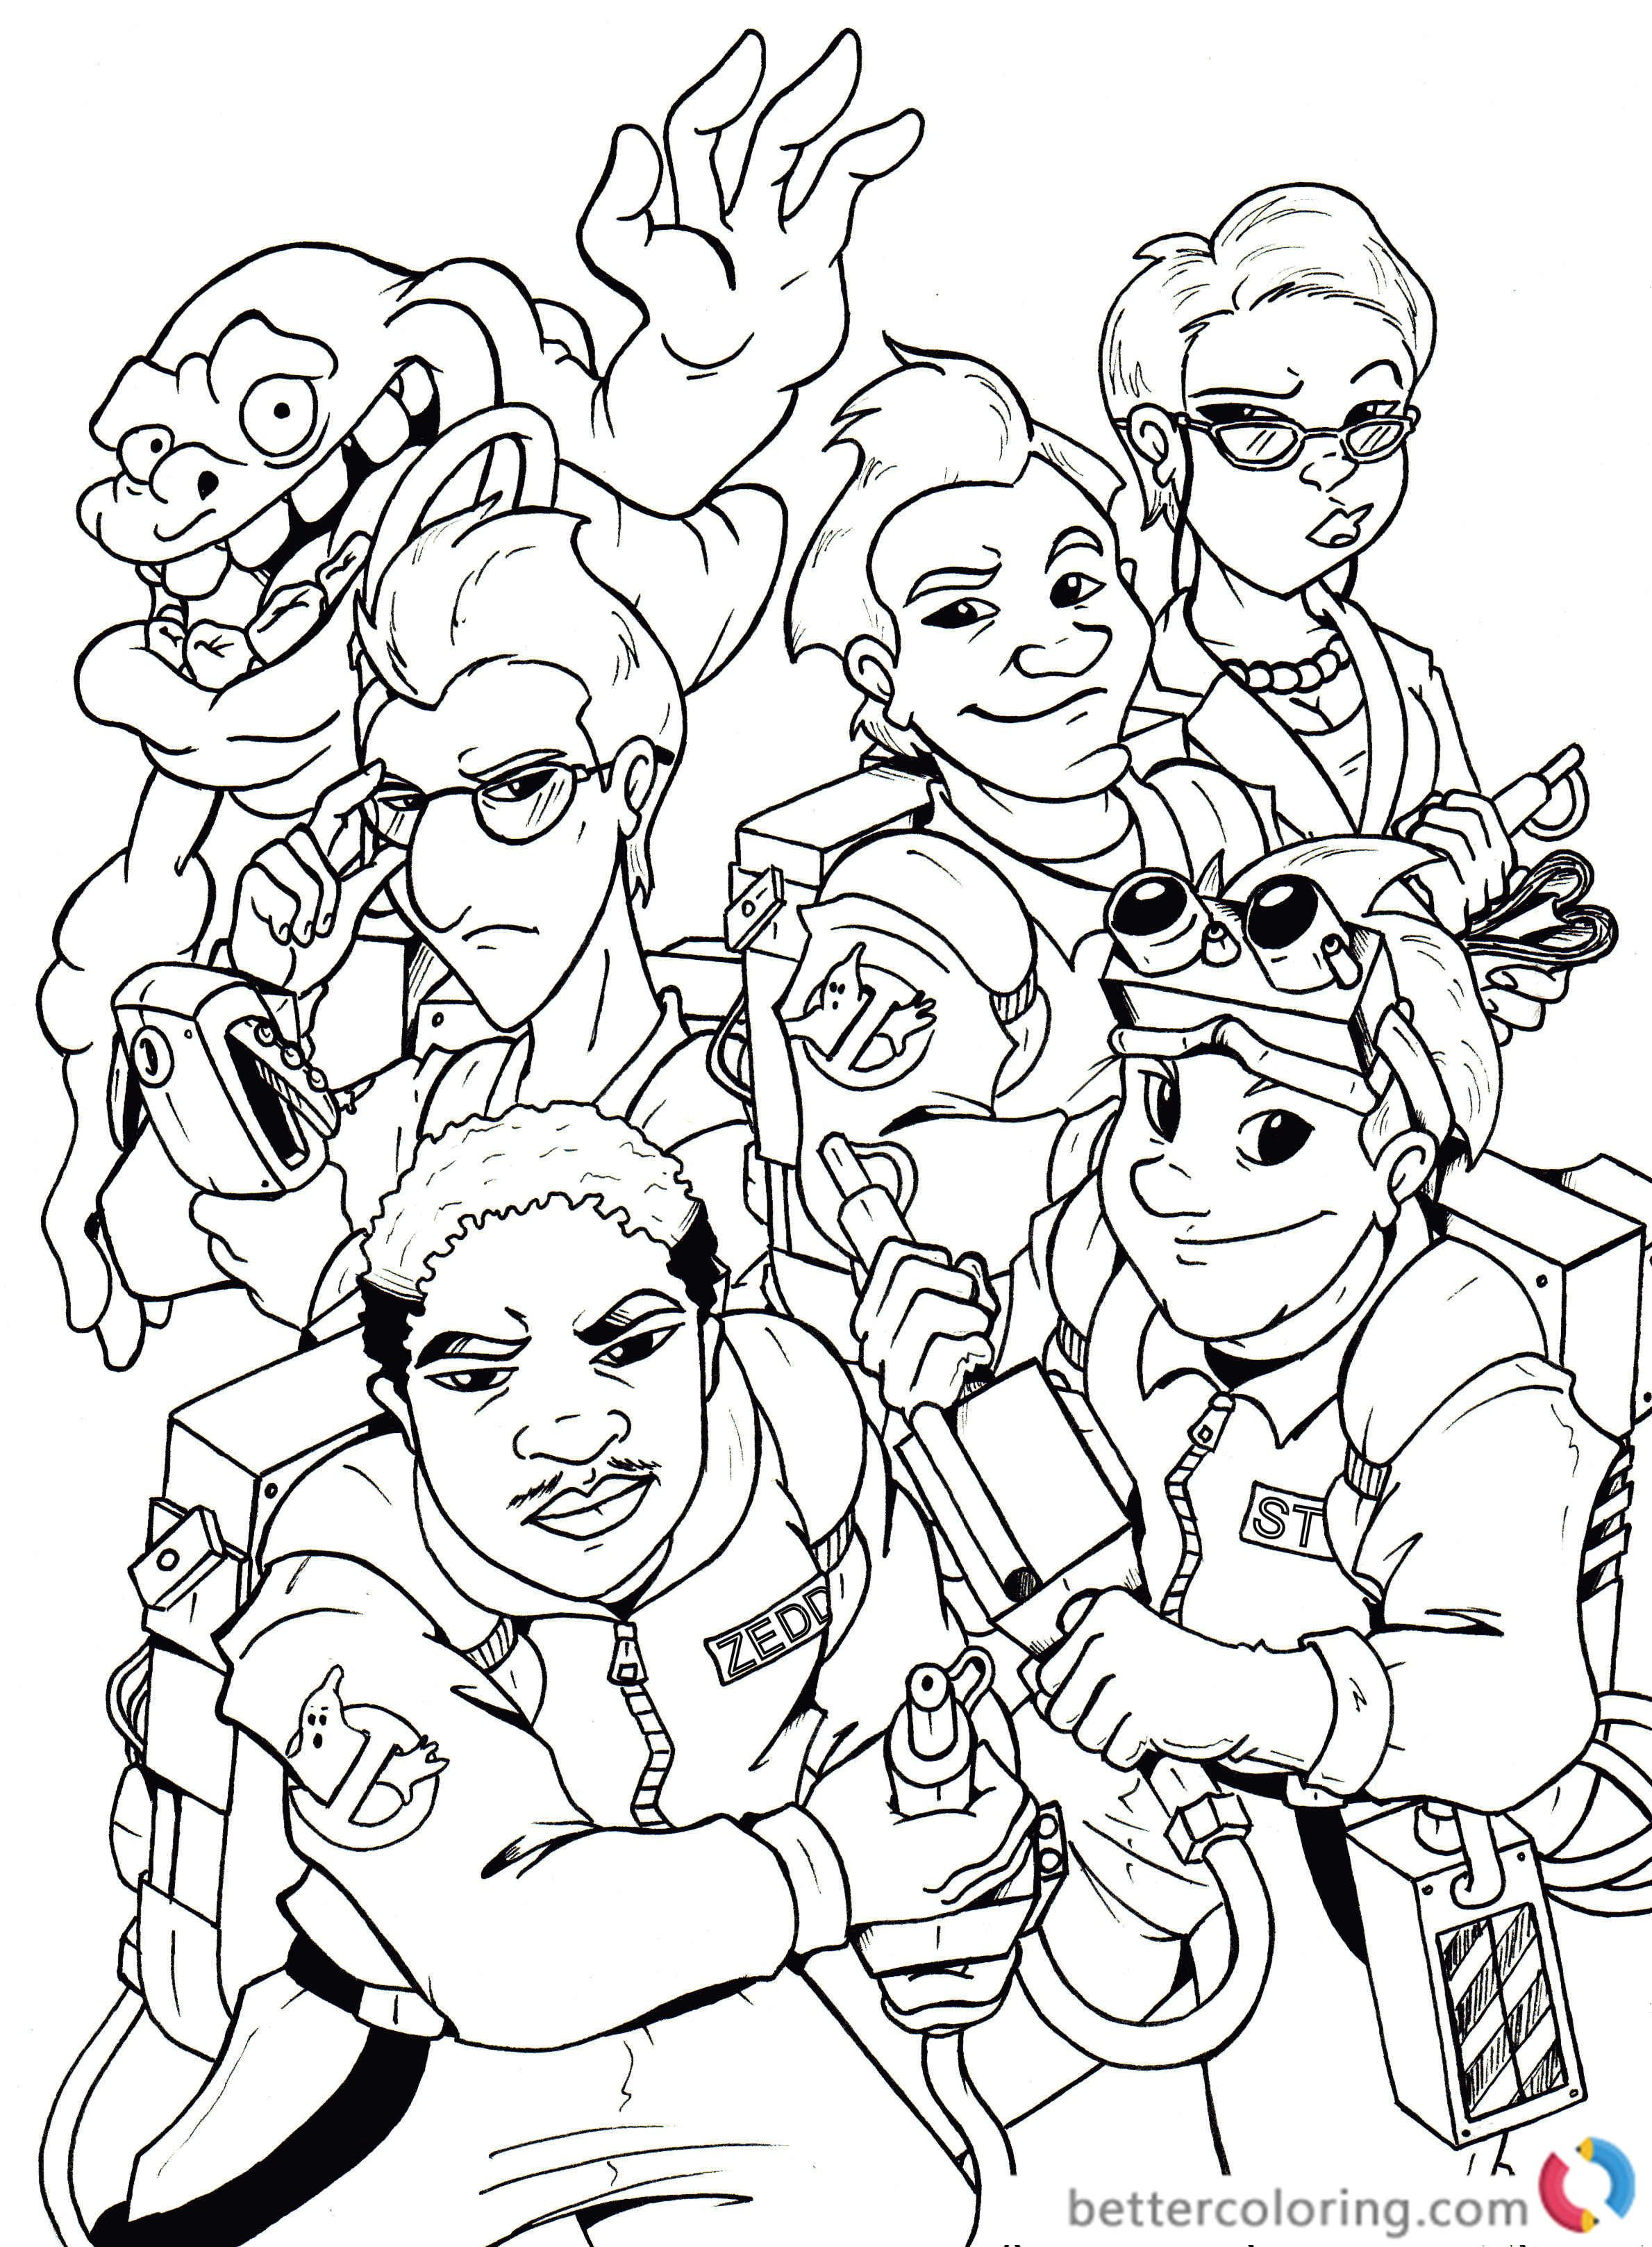 Free Ghostbusters Coloring Pages for kids and adults | Coloring ...